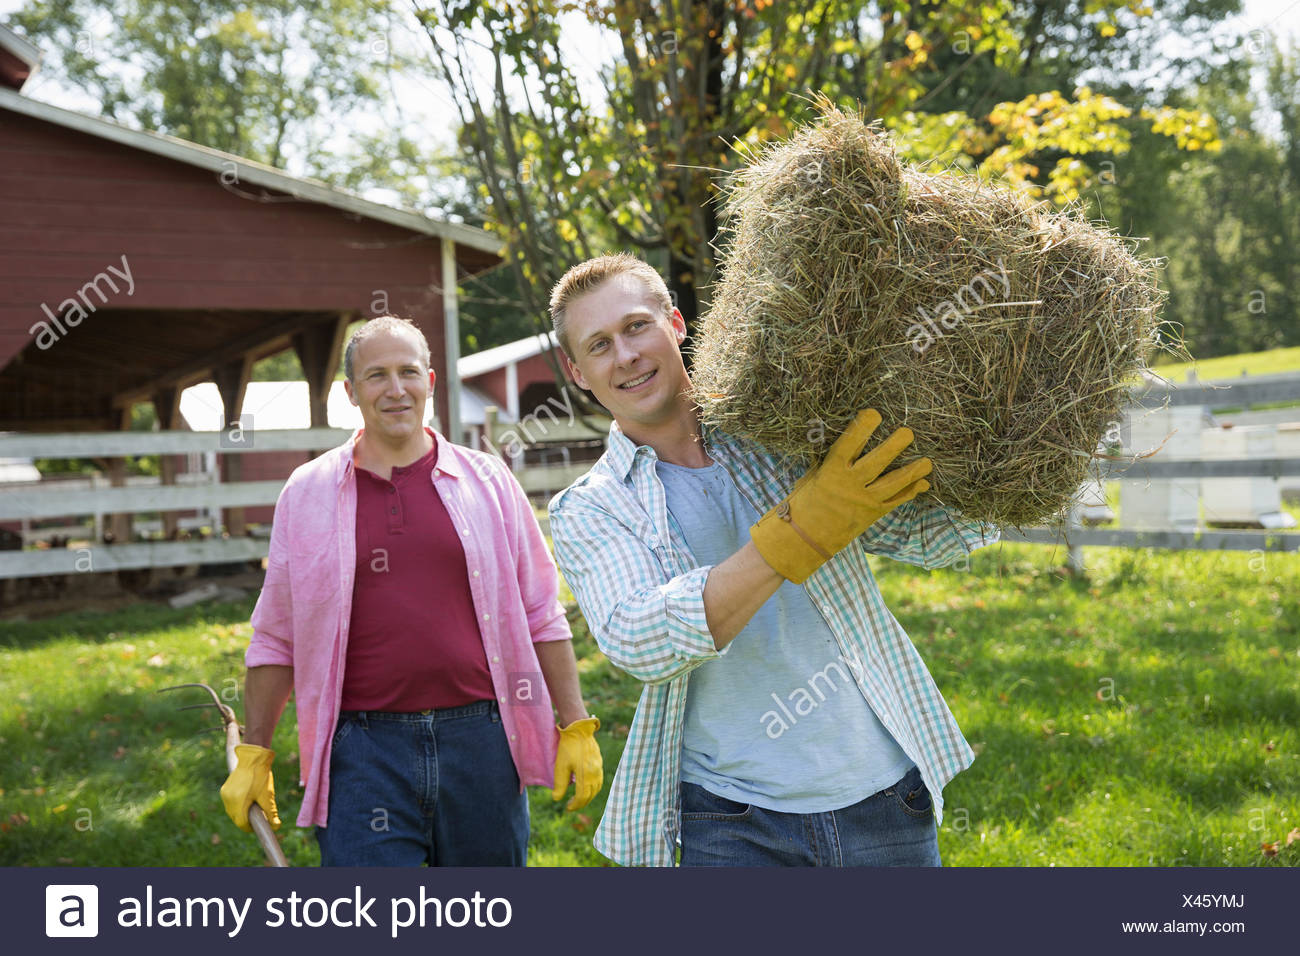 A family summer garing at a farm. A shared meal a homecoming. - Stock Image